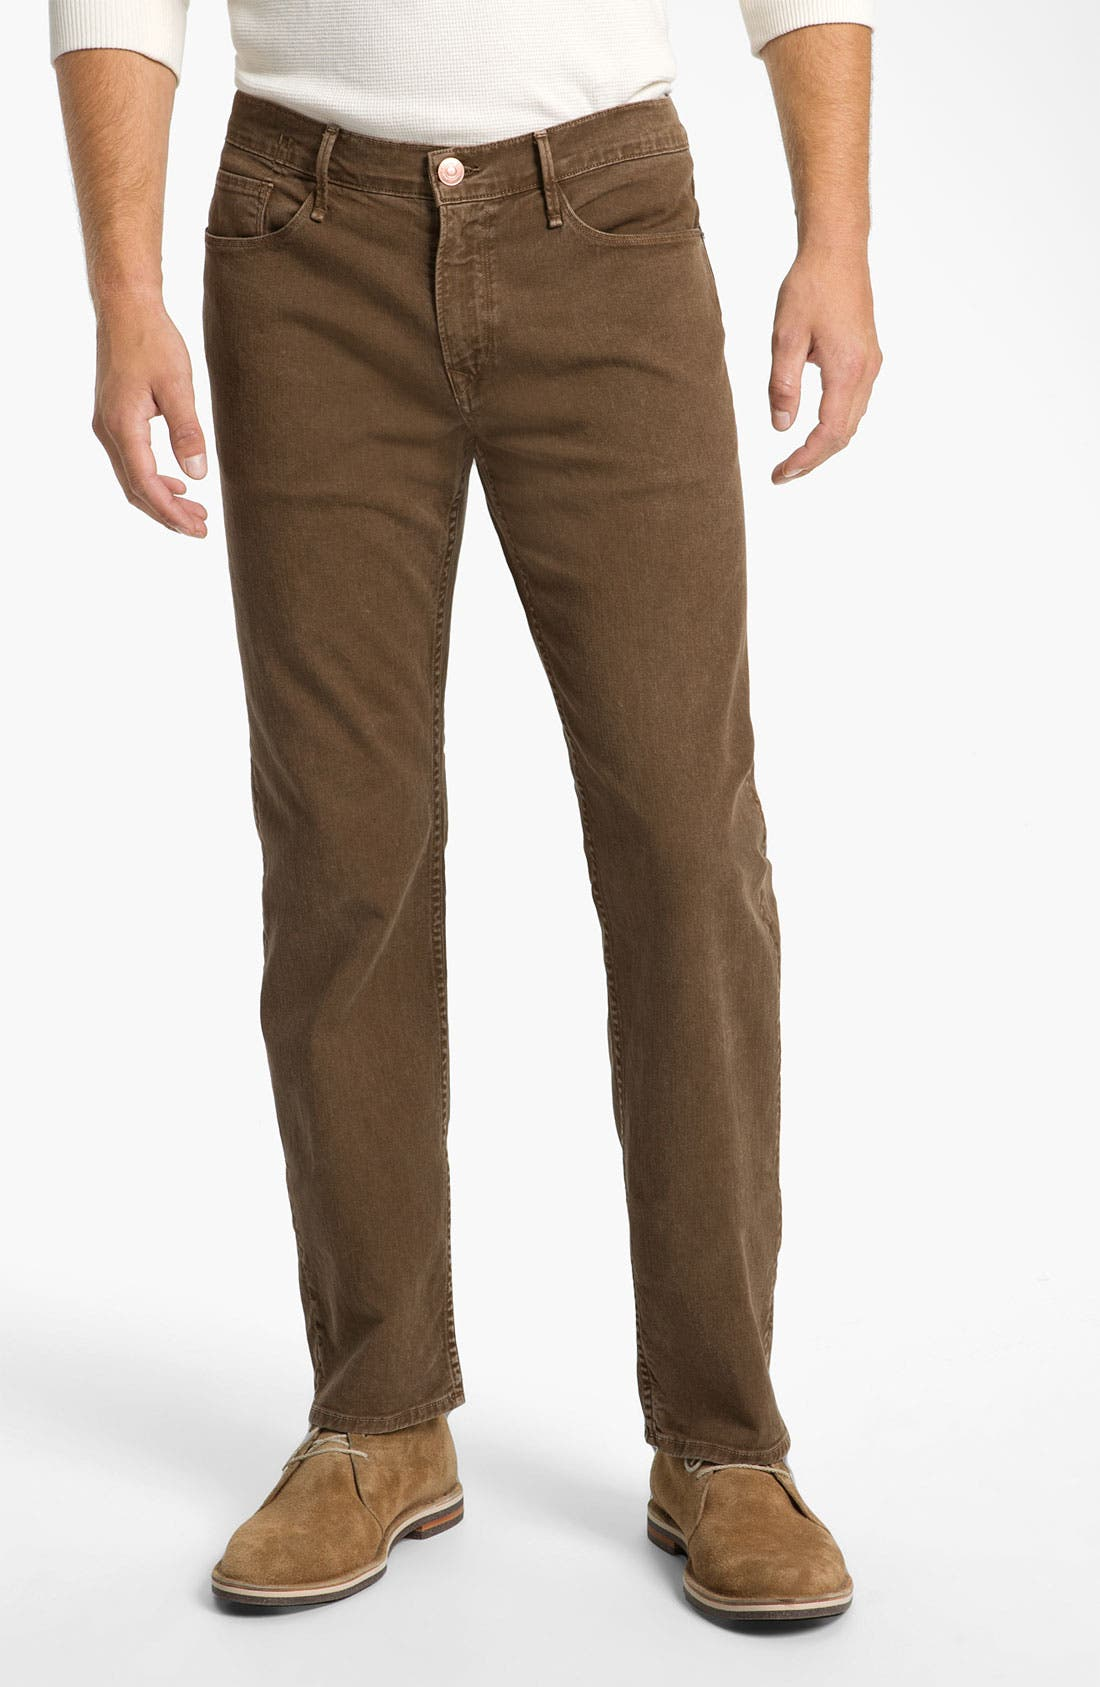 Alternate Image 1 Selected - Earnest Sewn 'Fulton' Straight Leg Twill Pants